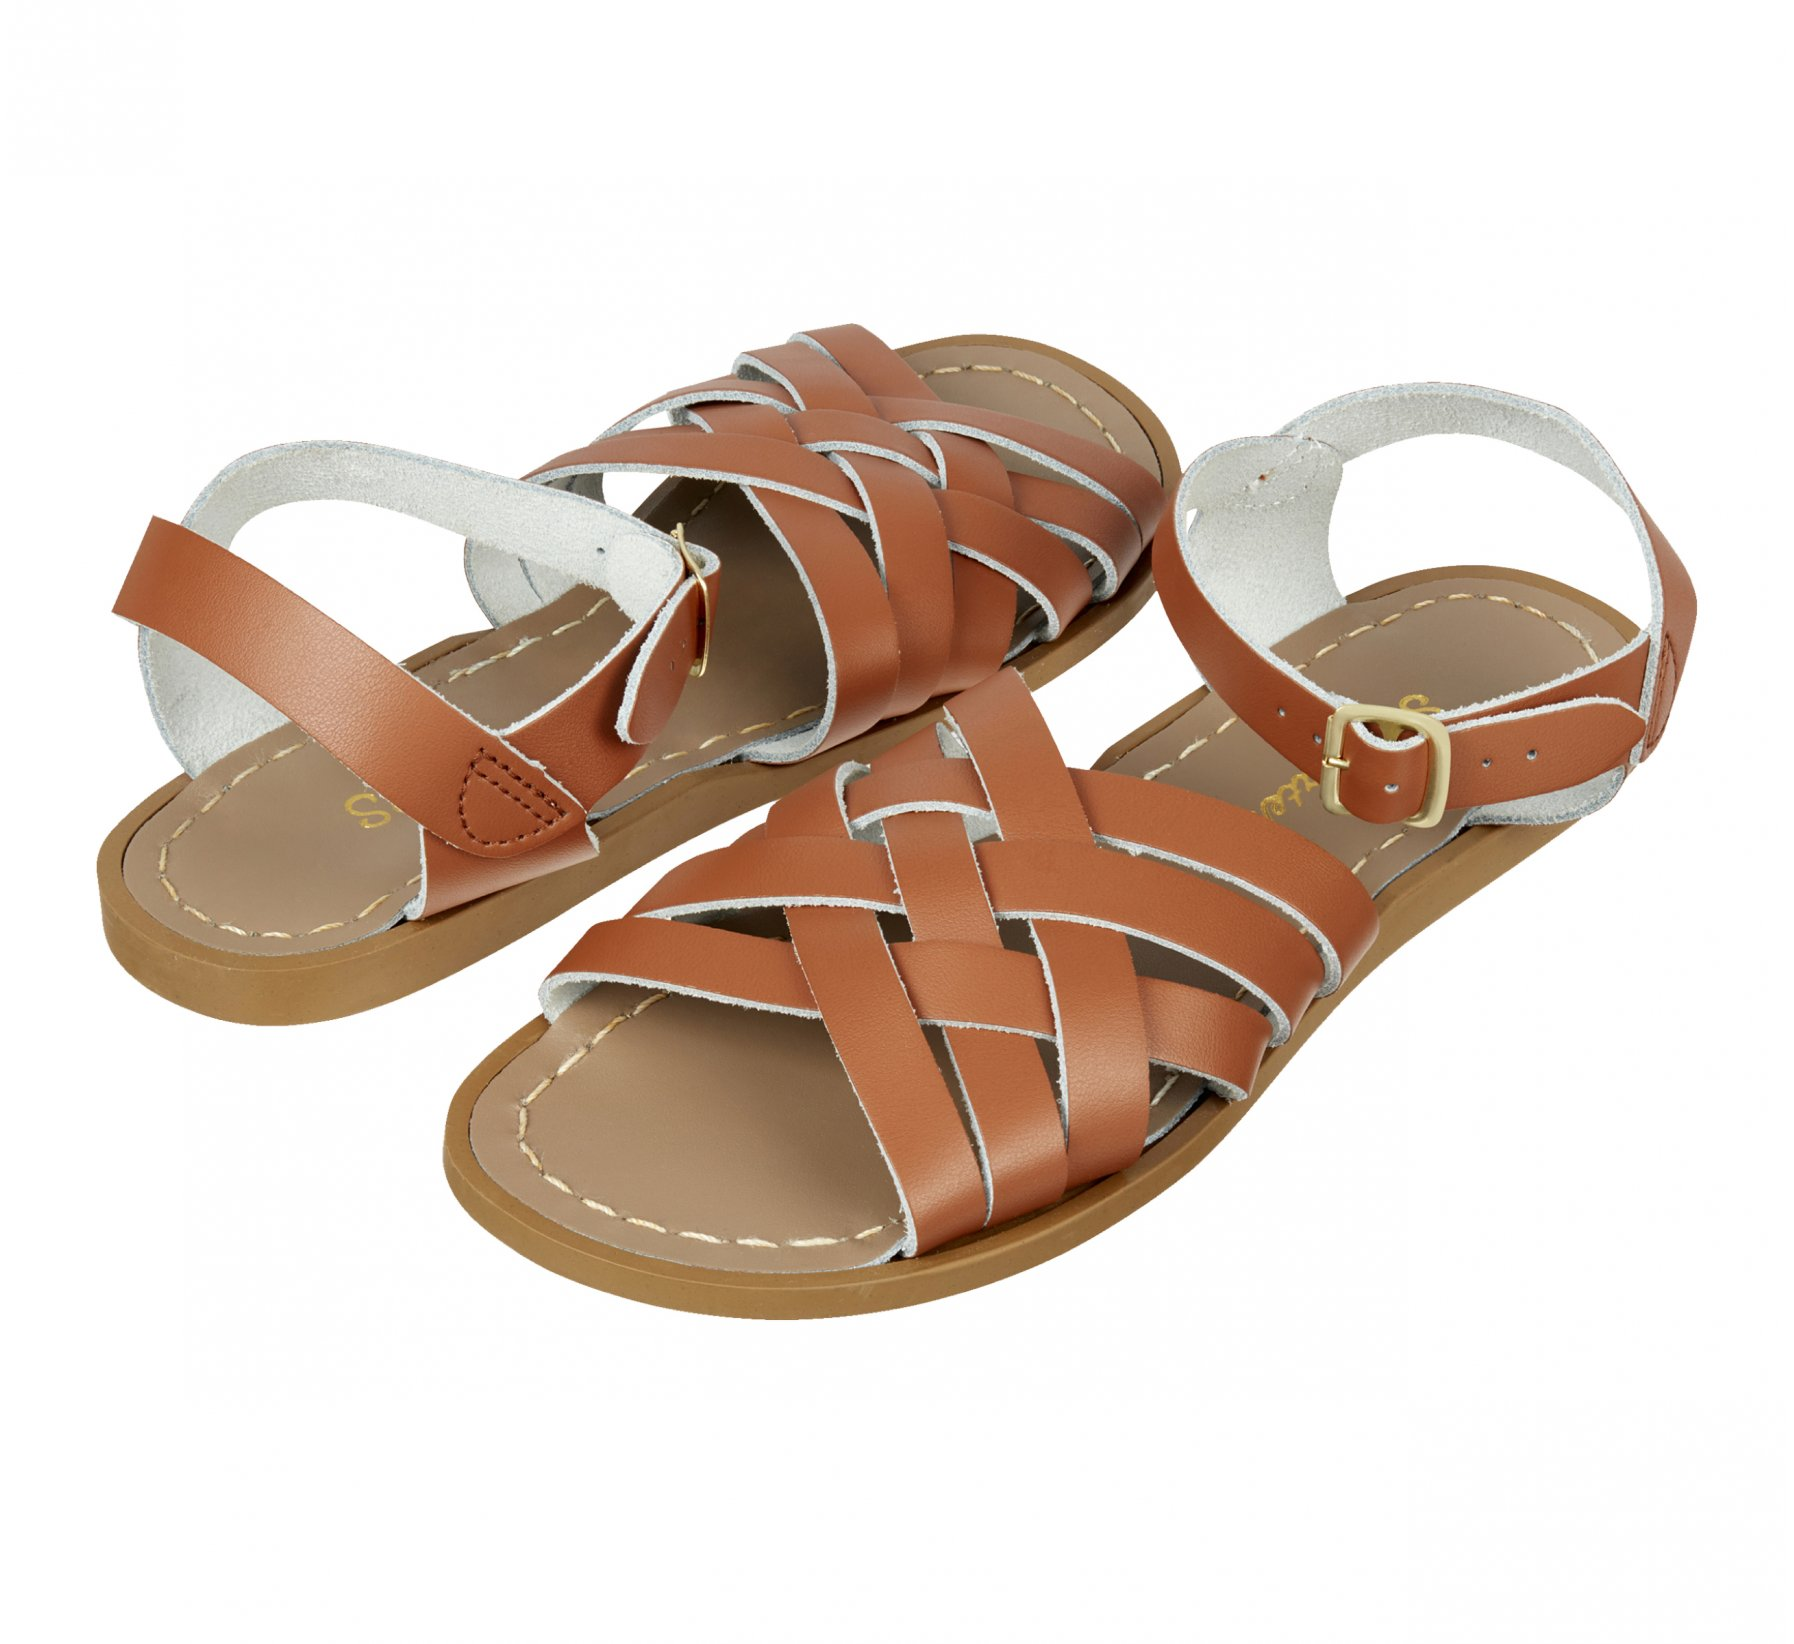 Retro Sawo Matang / Perang Kulit - Salt Water Sandals